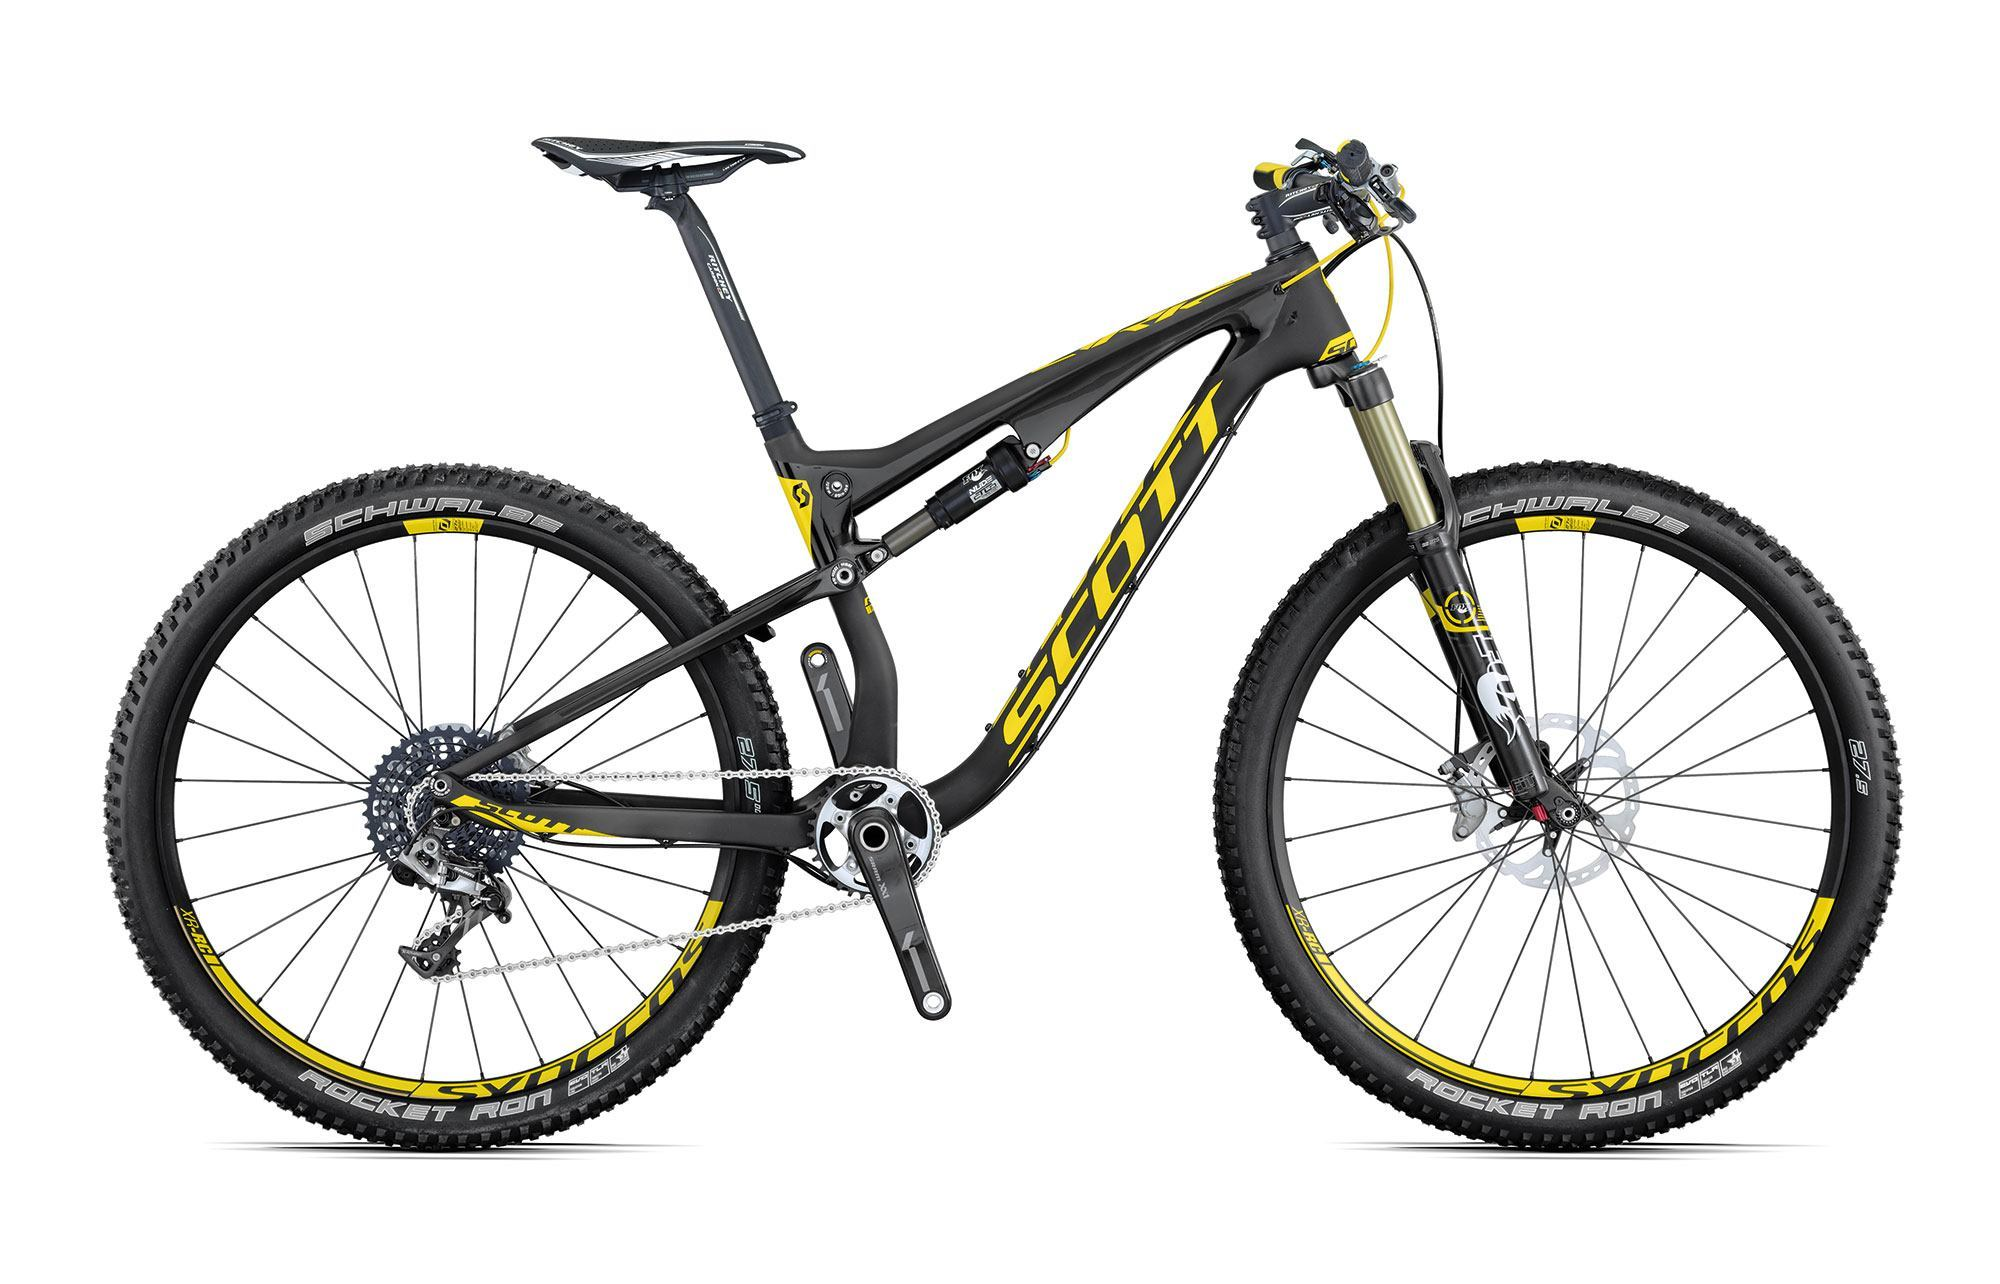 4747ec1780f 2015 Scott Spark 700 RC Bike | R&A Cycles